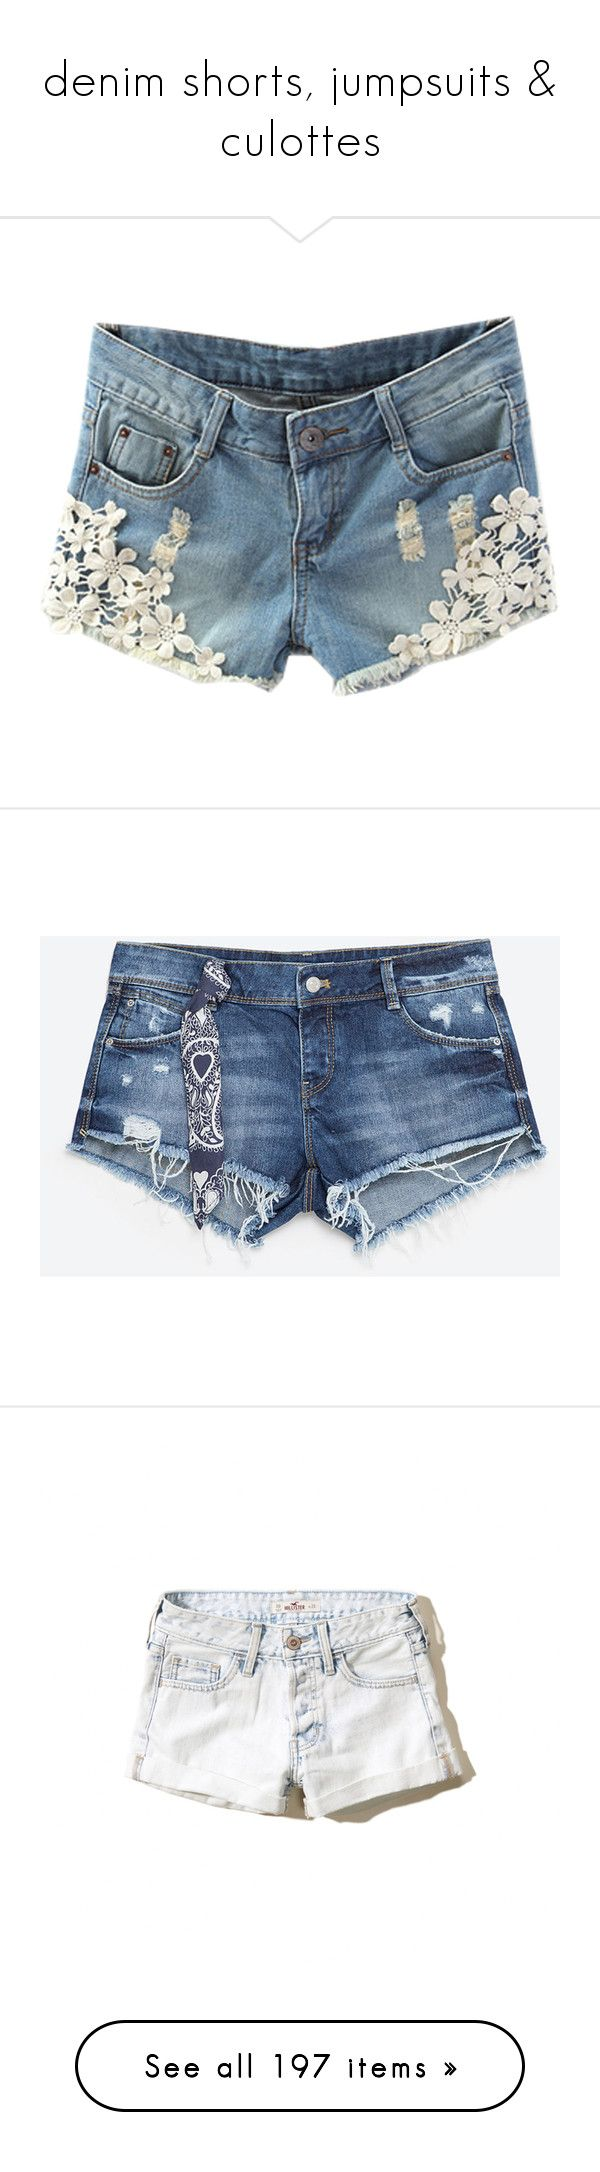 """denim shorts, jumpsuits & culottes"" by bonadea007 ❤ liked on Polyvore featuring shorts, bottoms, pants, blue, short jean shorts, zipper shorts, blue lace shorts, jean shorts, blue jean shorts and zara shorts"